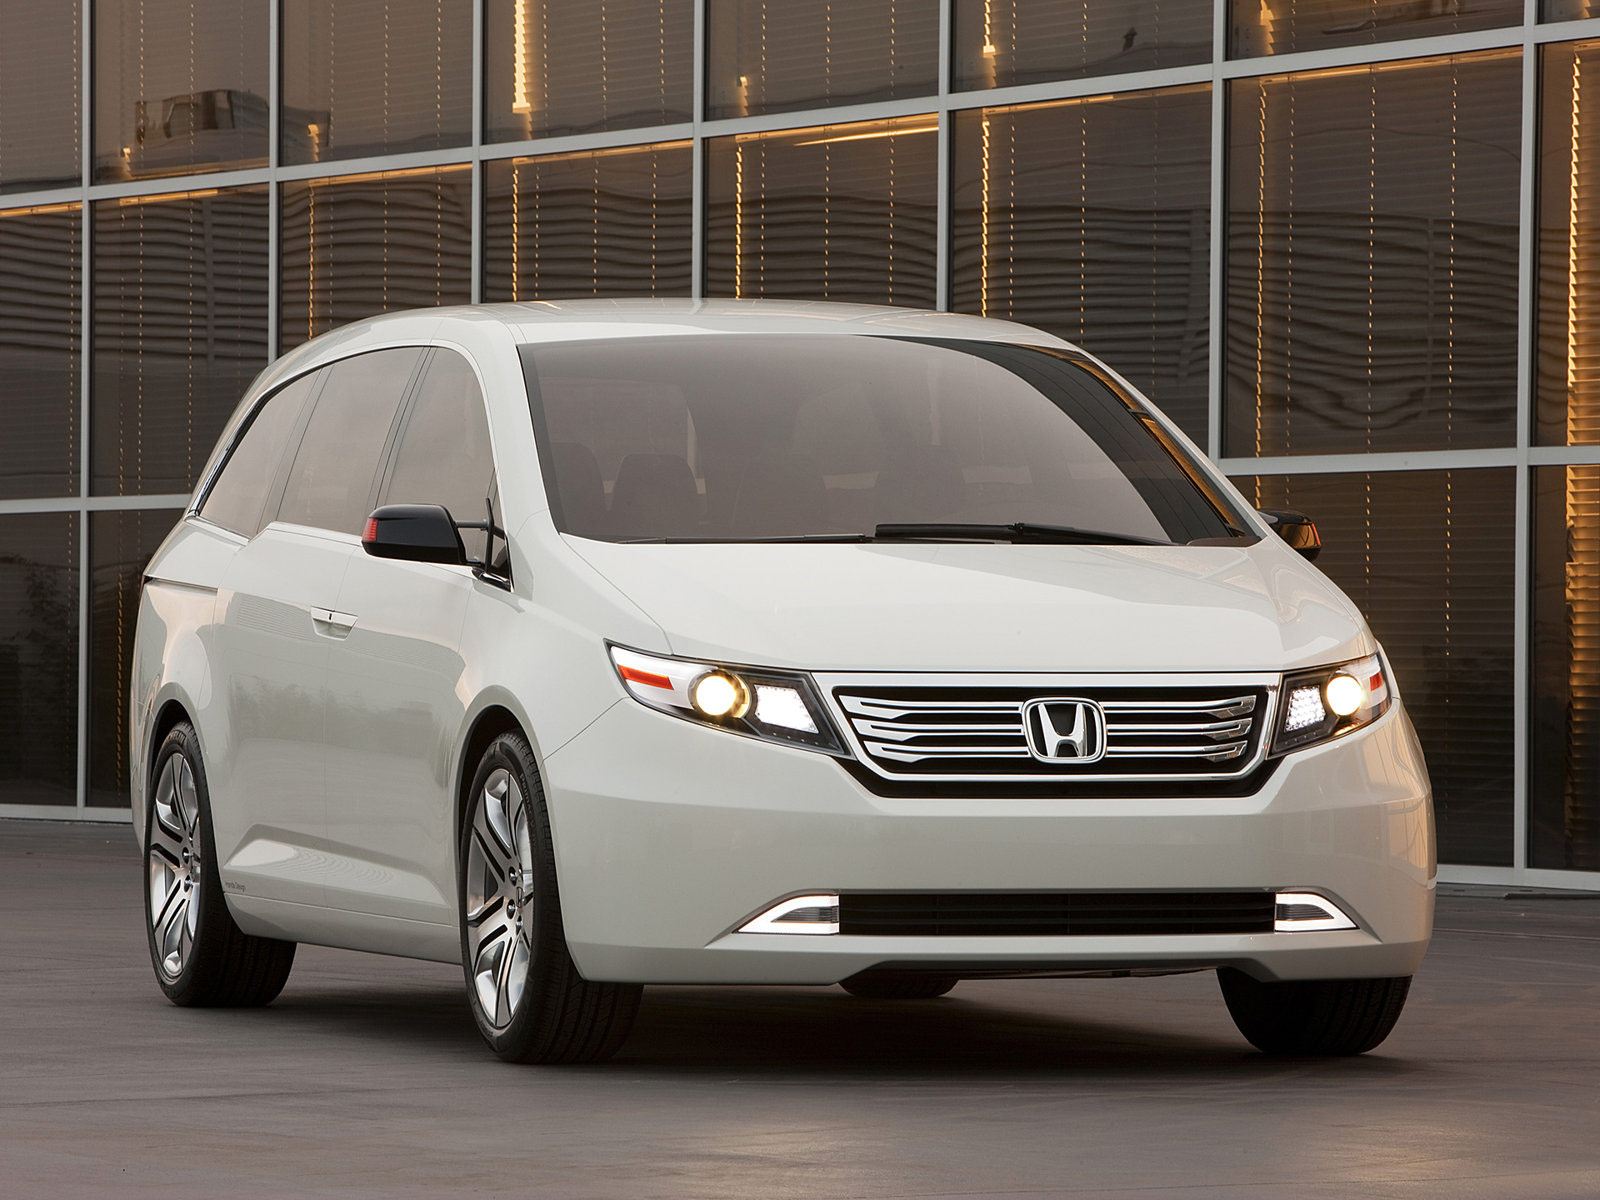 POWER VEHICLE Modified Car HONDA Odyssey Concept 2010